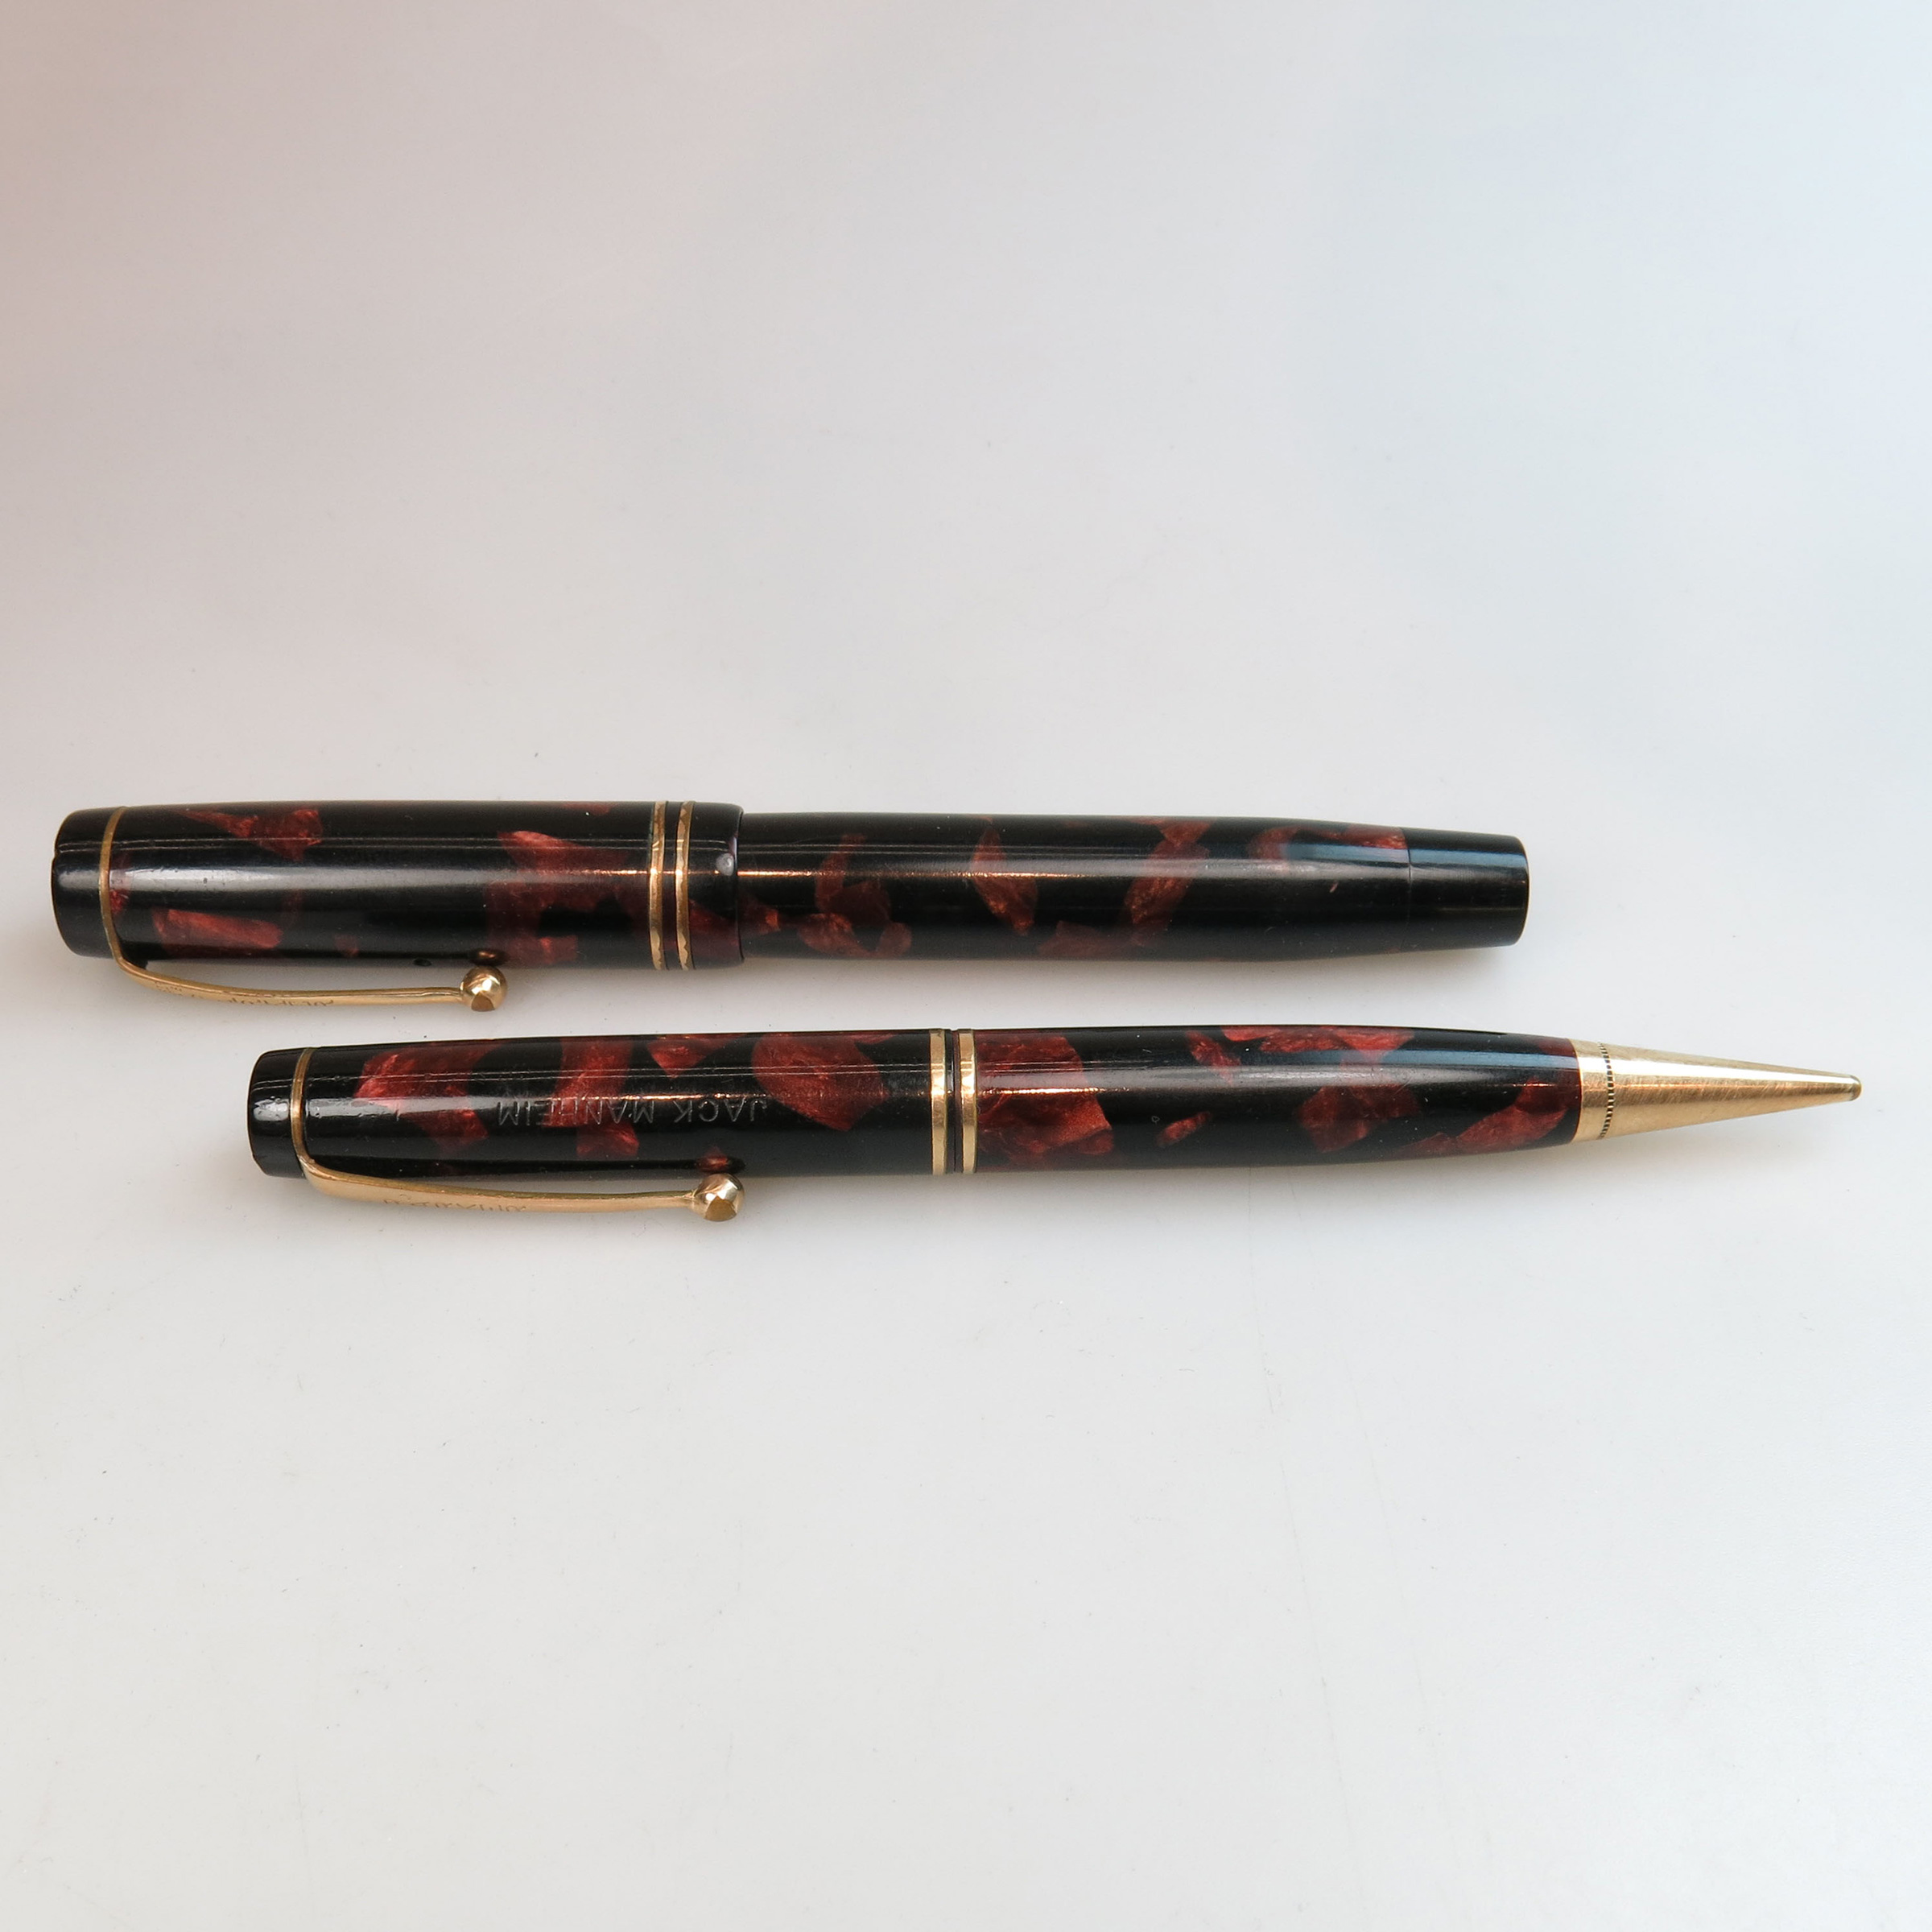 Parker Duo Fold Streamline Senior Fountain Pen And Pencil Set